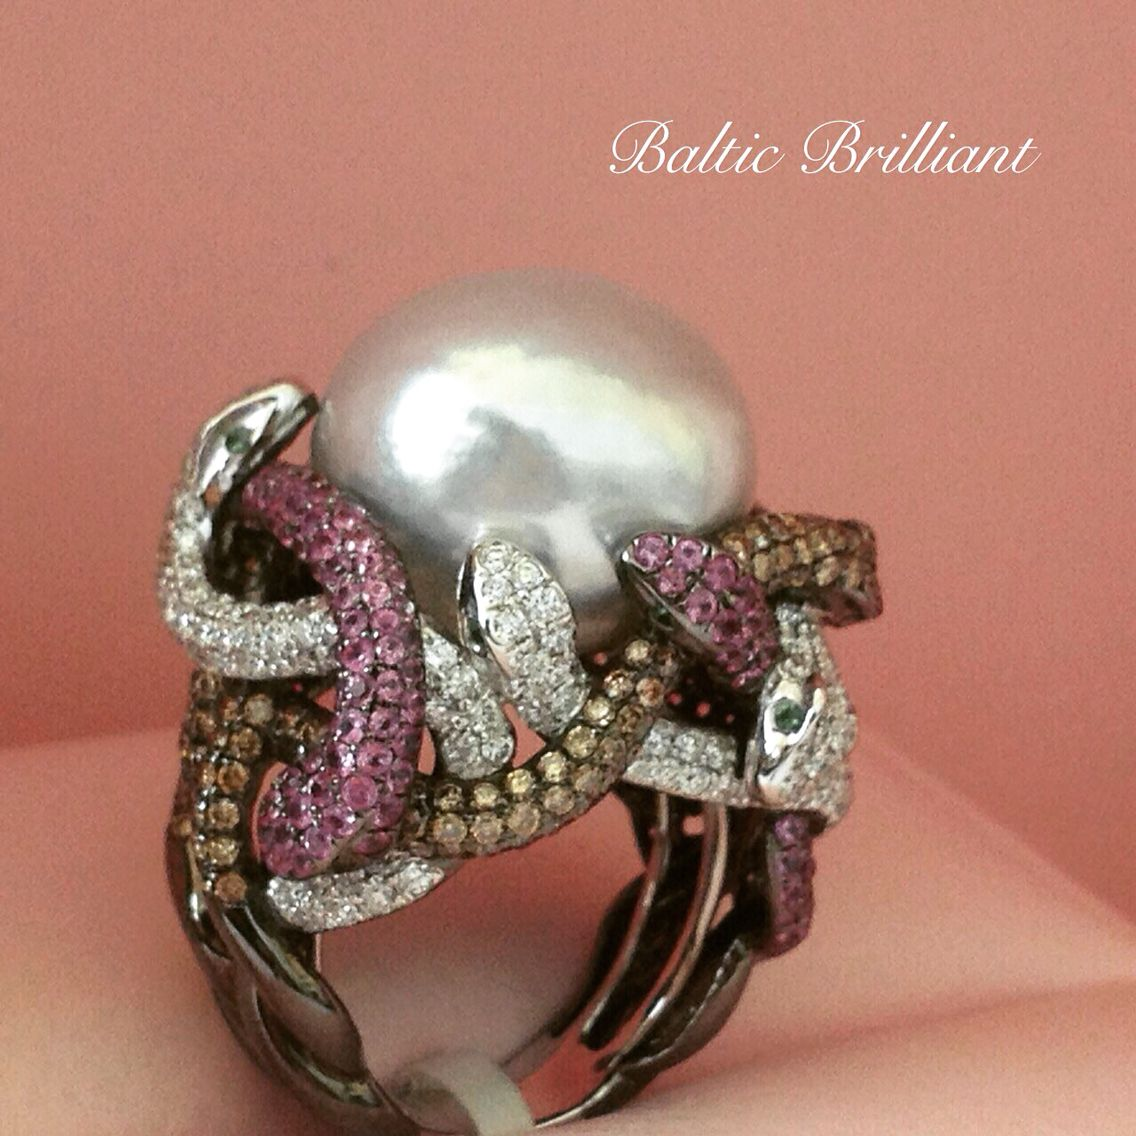 Marvelous Big Ring in 18K Gold with Diamonds and color stones #balticbrilliant #pearl #diamond #gems #ring